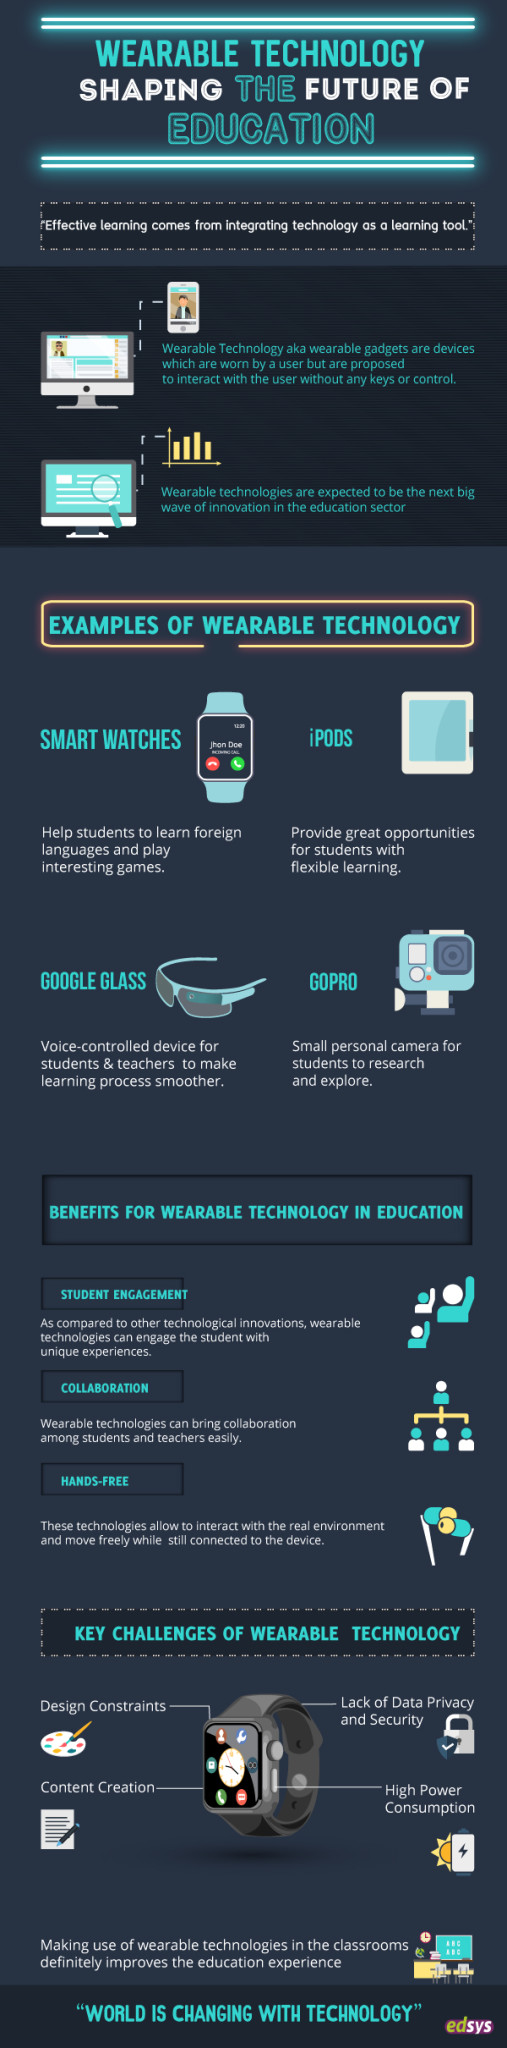 Wearable Technology- Shaping the Future of Education [Infographics]